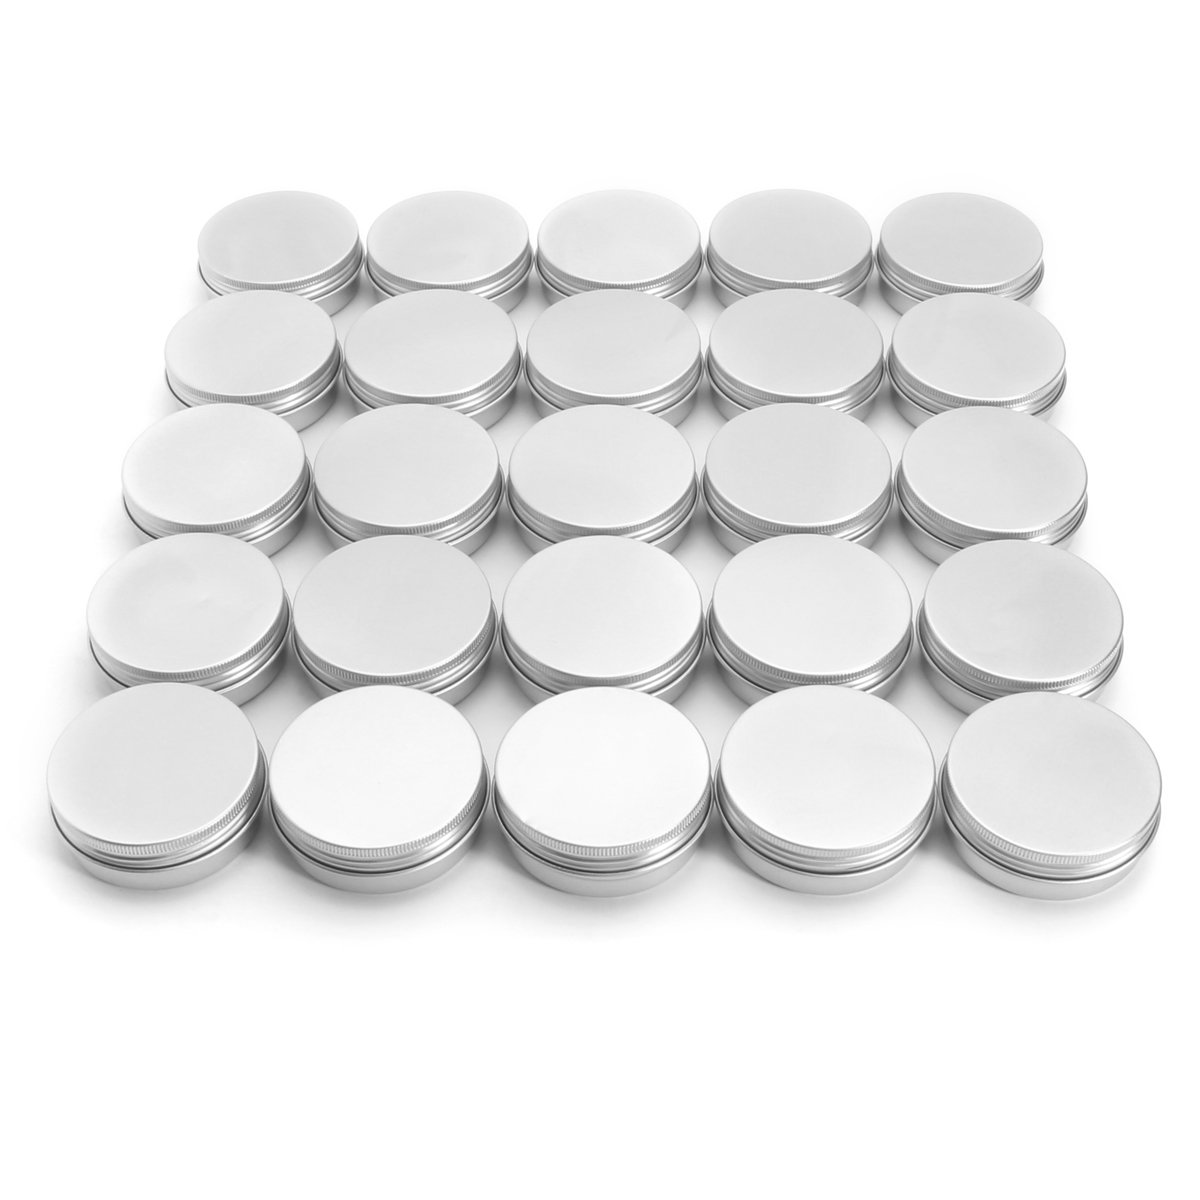 Round Can, Kisstaker 24 Pack Steel Round Aluminum Cans 2 oz Screw Top Lid Storage Beard Lip Balm Empty Can